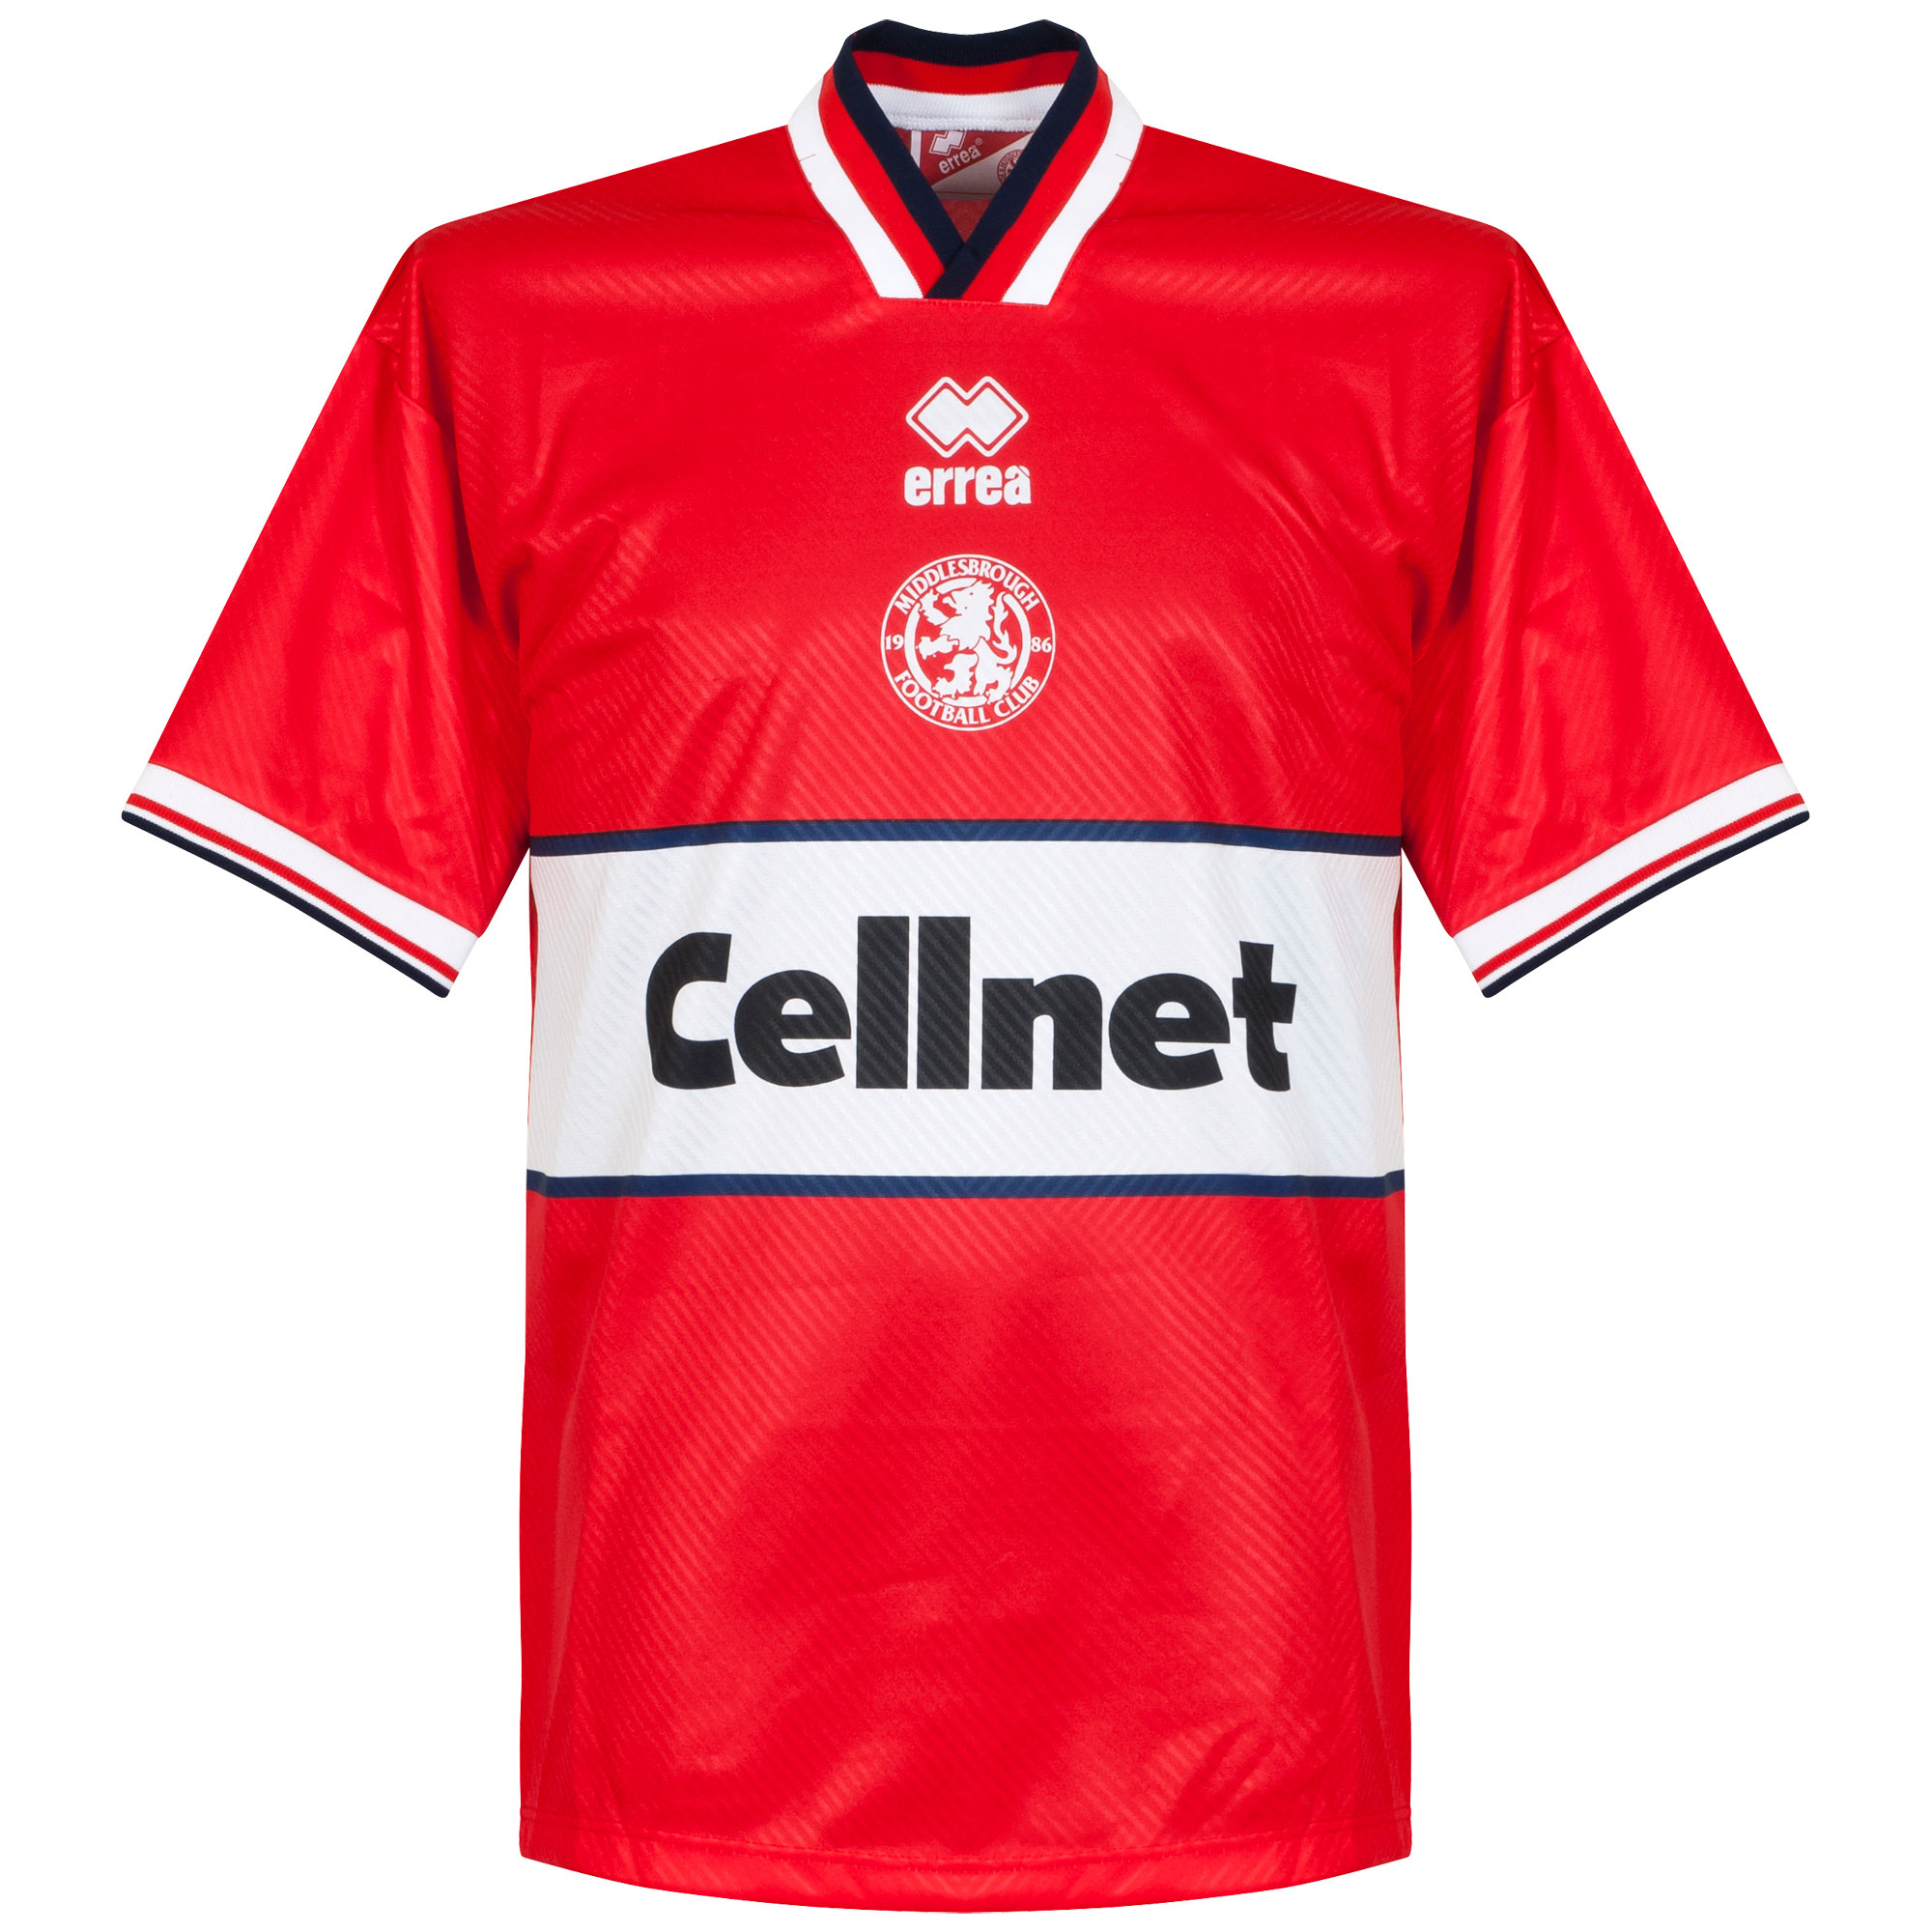 Errea Middlesborough 1997-1998 Home Shirt - NEW Condition - Size Large - L